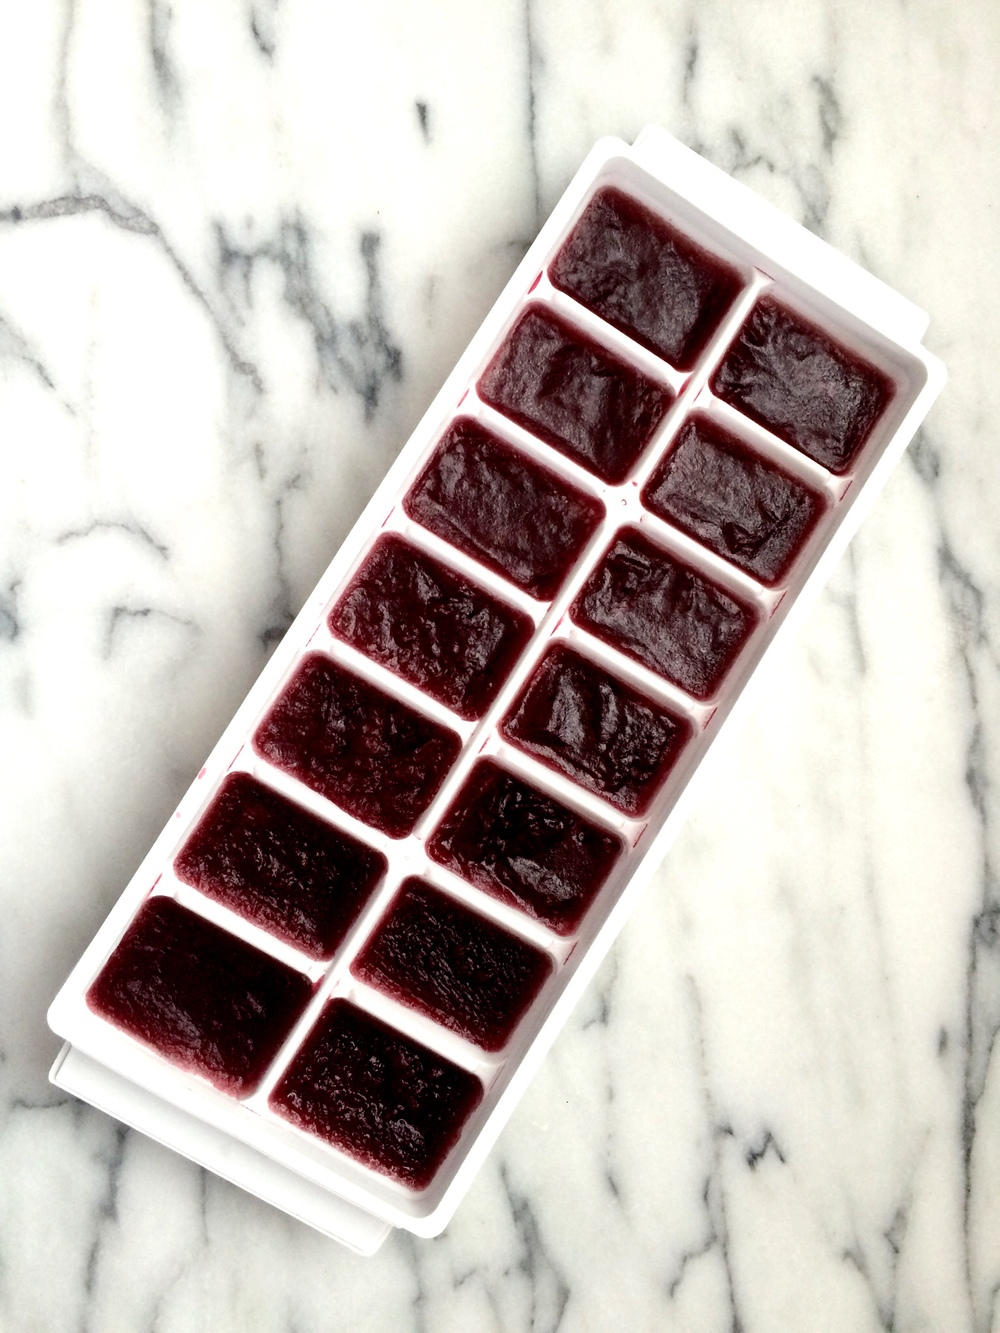 Host a Wine Tasting Party (Sugar & Rose) - Freeze Leftover Wine in Ice Cube Trays